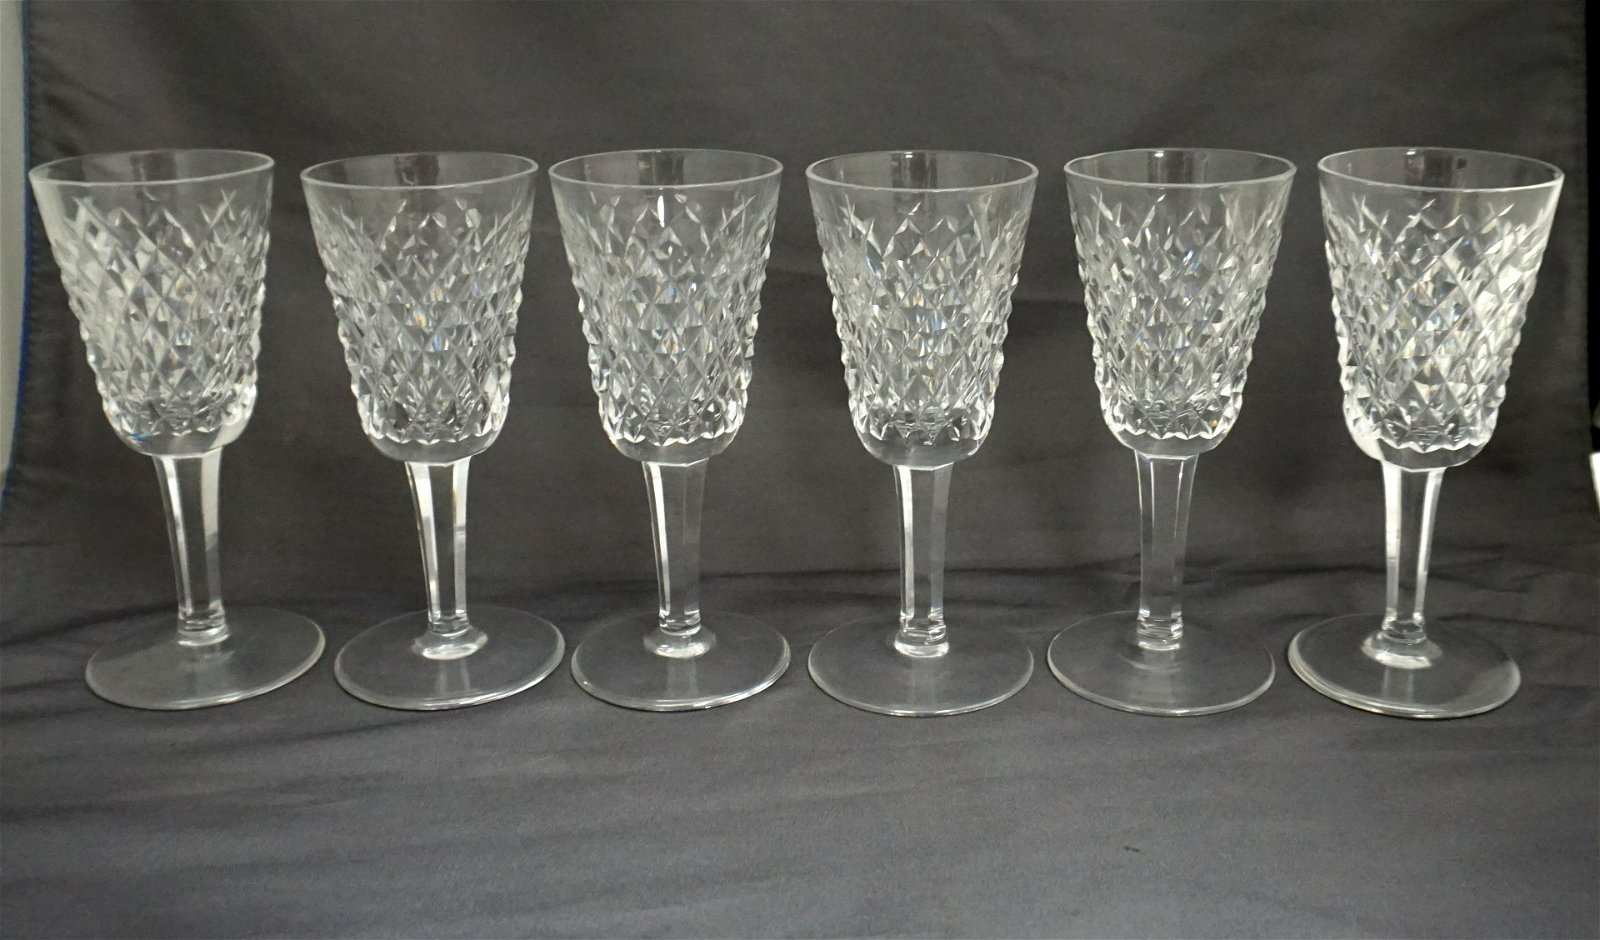 6 WATERFORD CRYSTAL ALANA SHERRY GLASSES